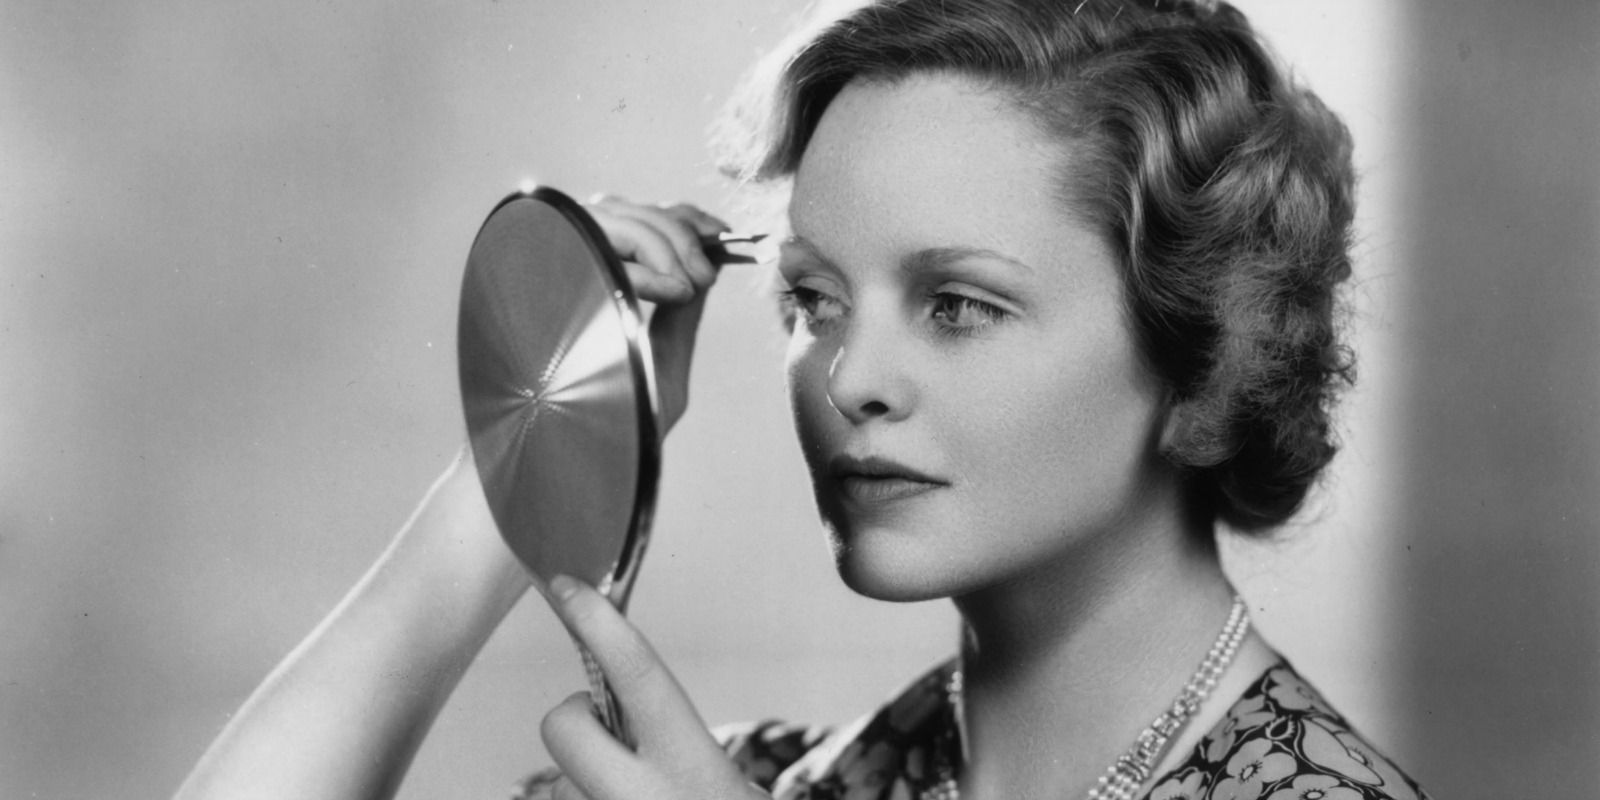 12 Common Eyebrow Mistakes - How to Get Perfect Eyebrows